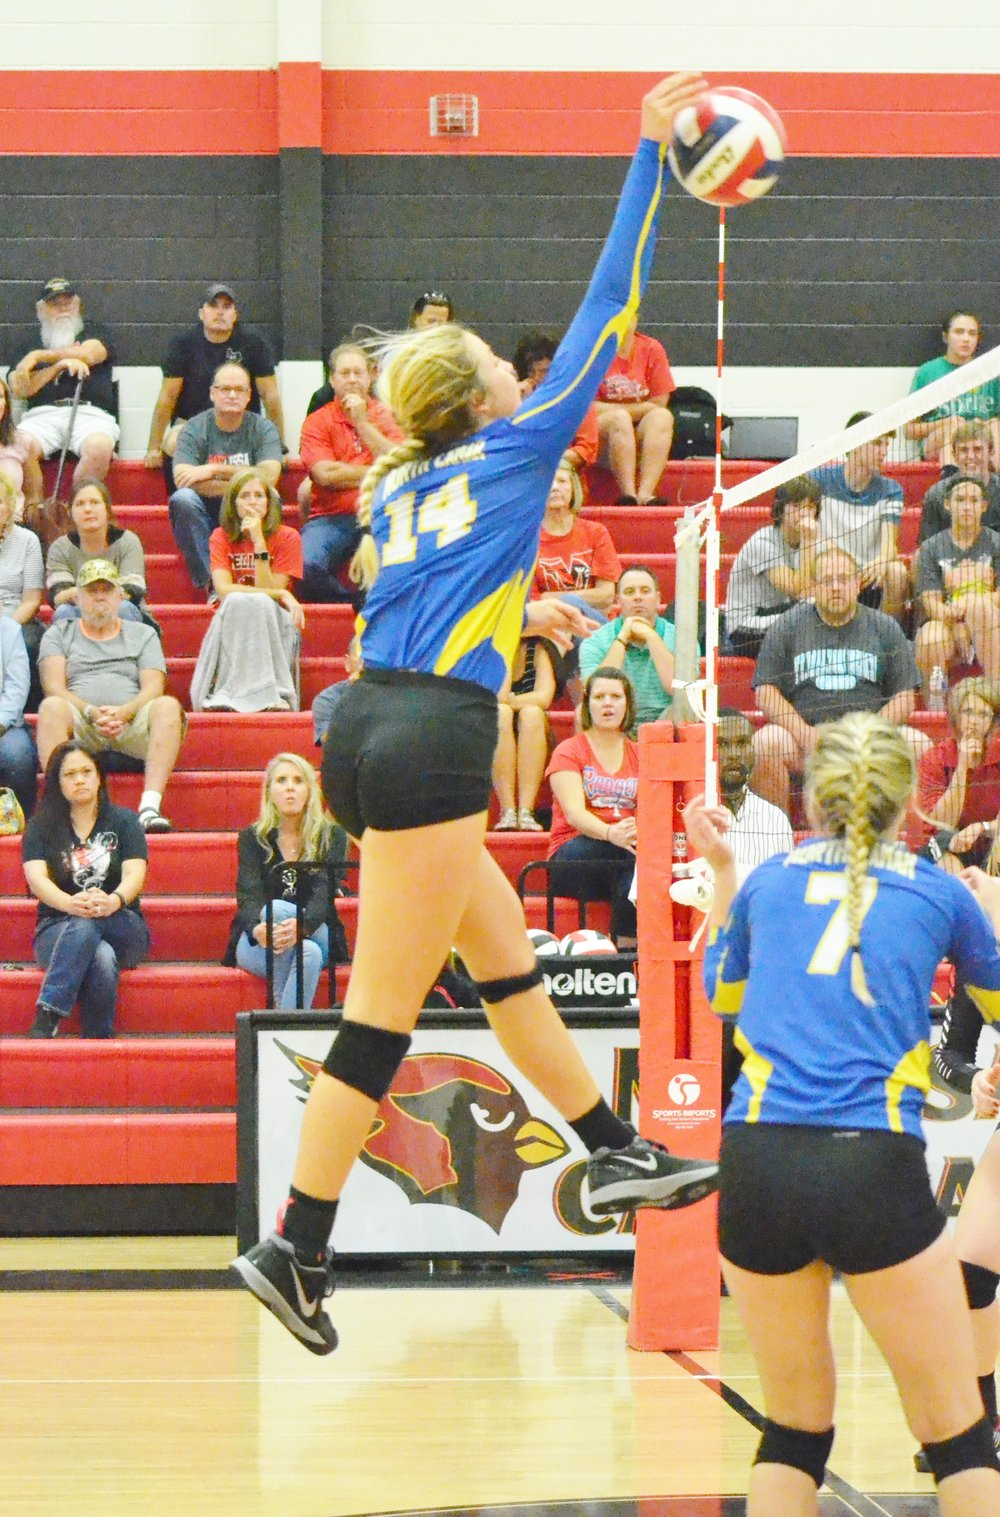 Photo by Beverly White. Bailey Foy (14) spiking the ball in a game earlier this season.